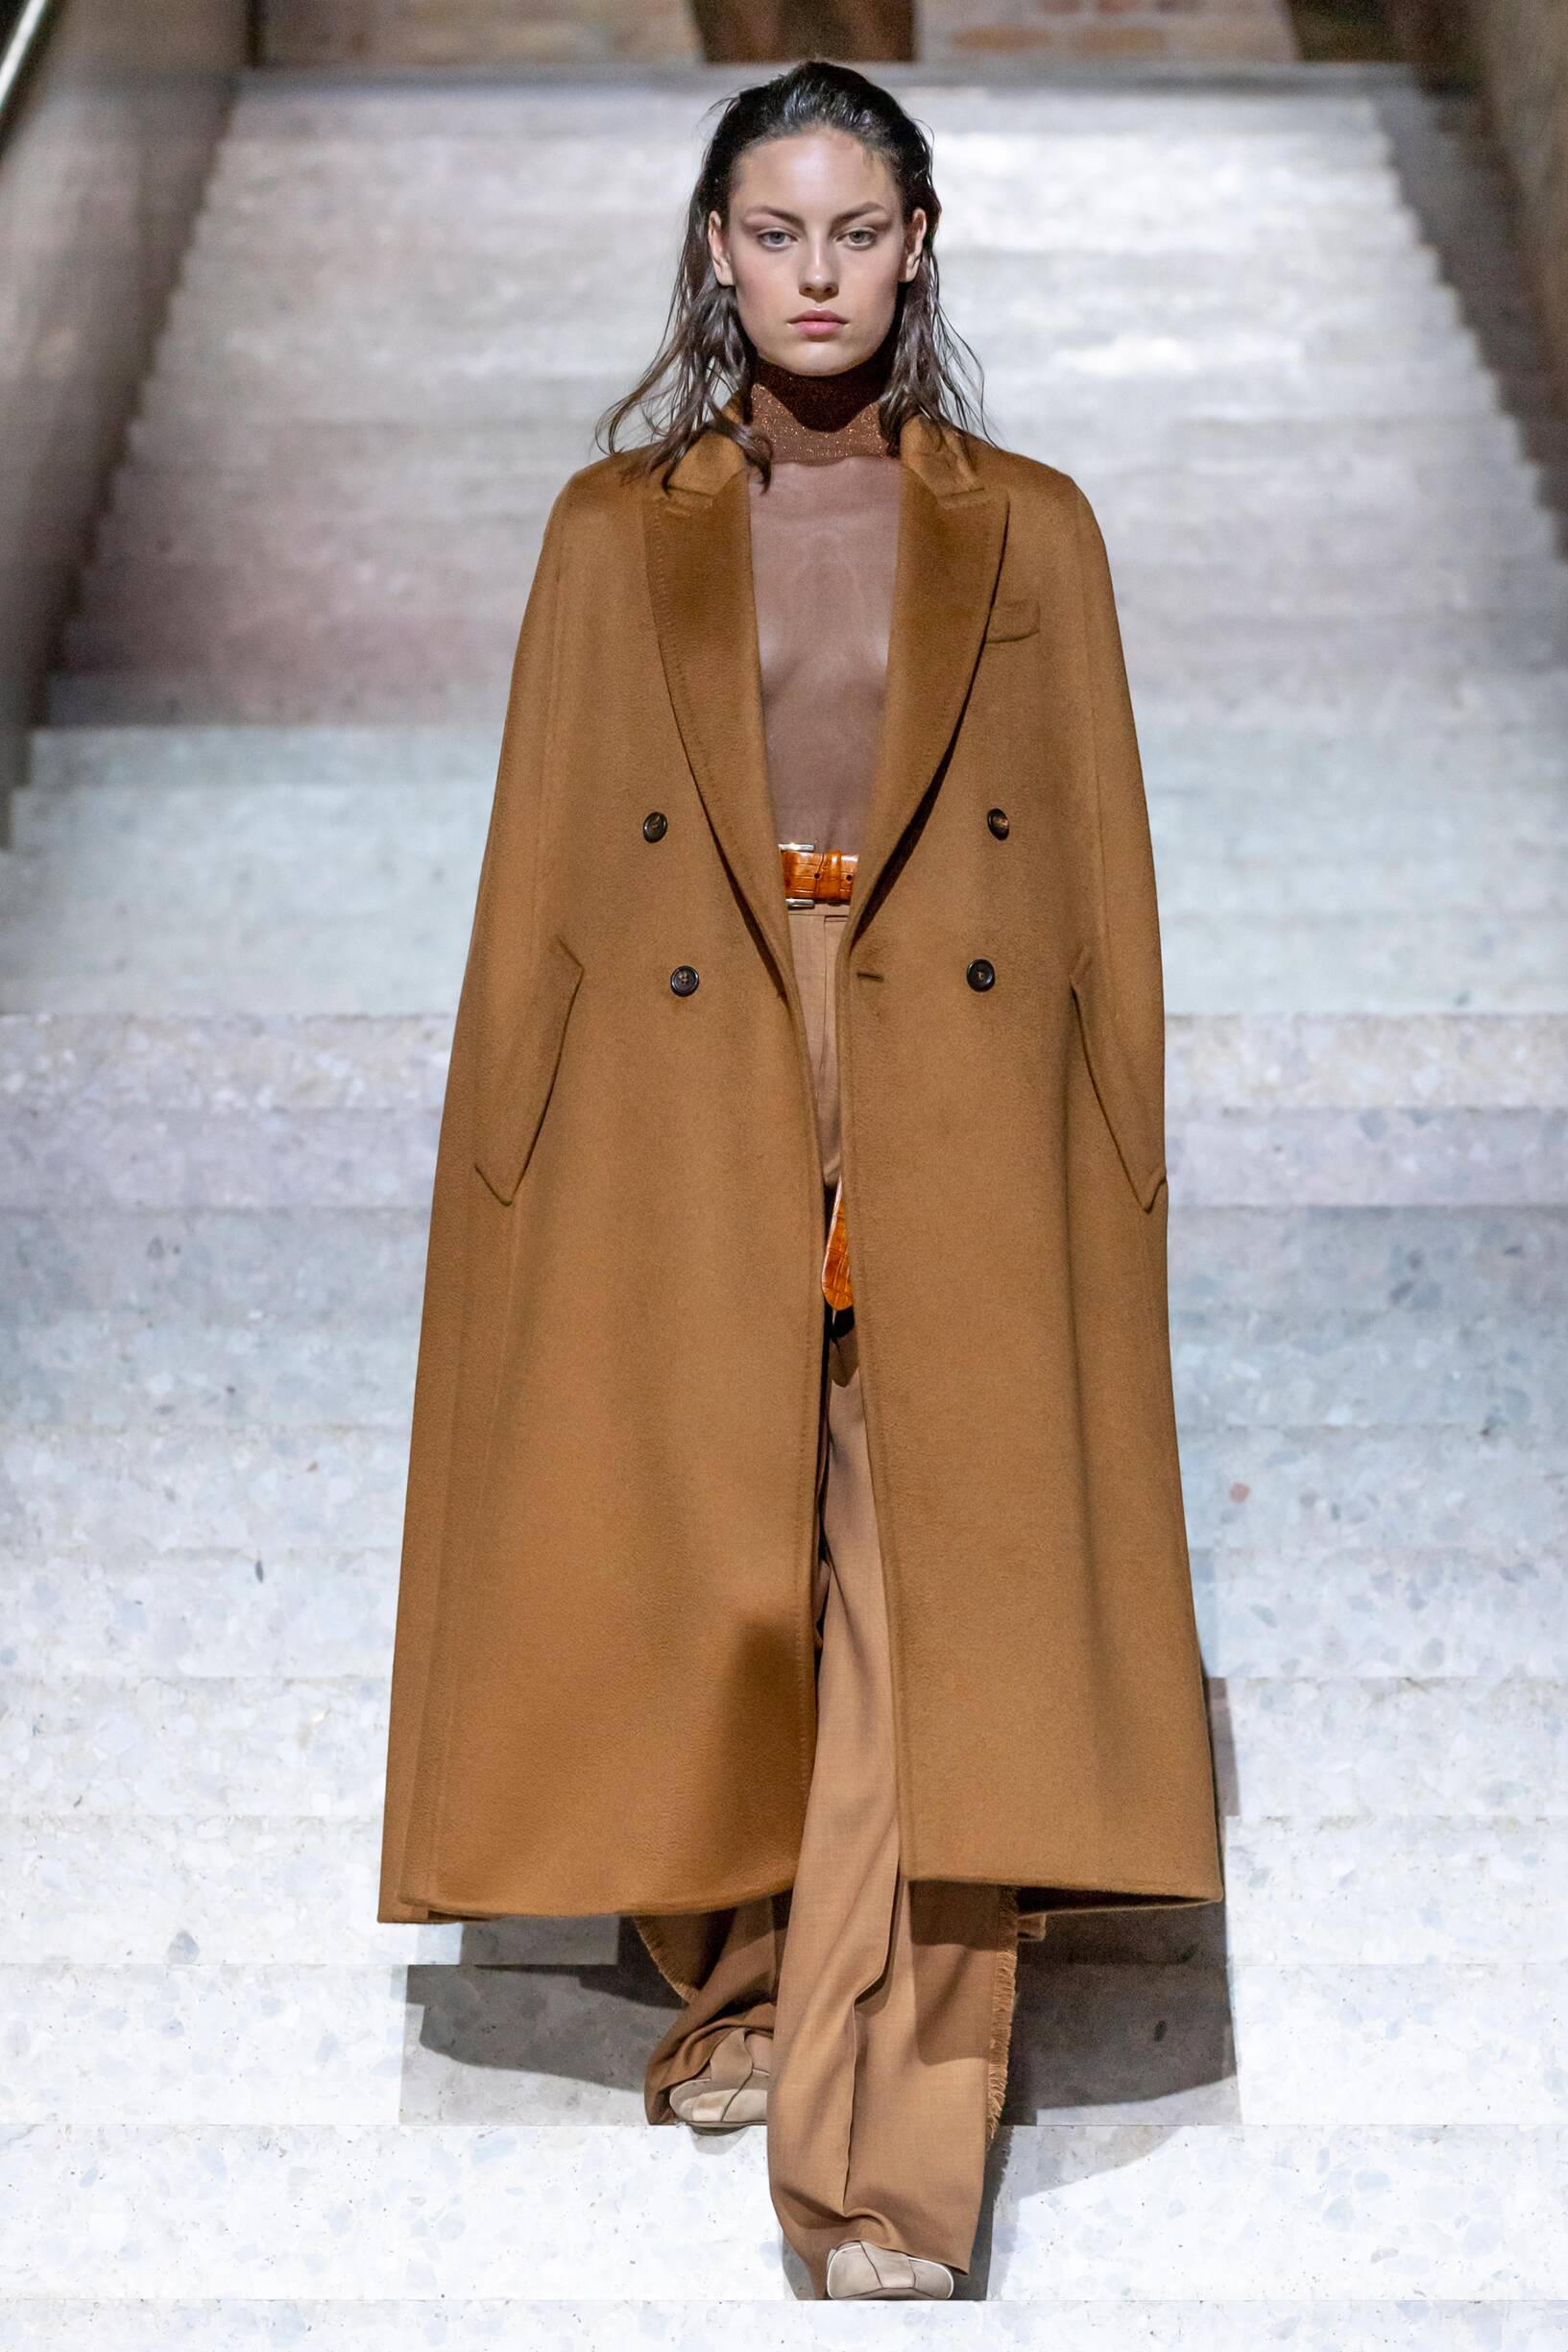 Max Mara Resort 2020 Collection Look 14 Berlin